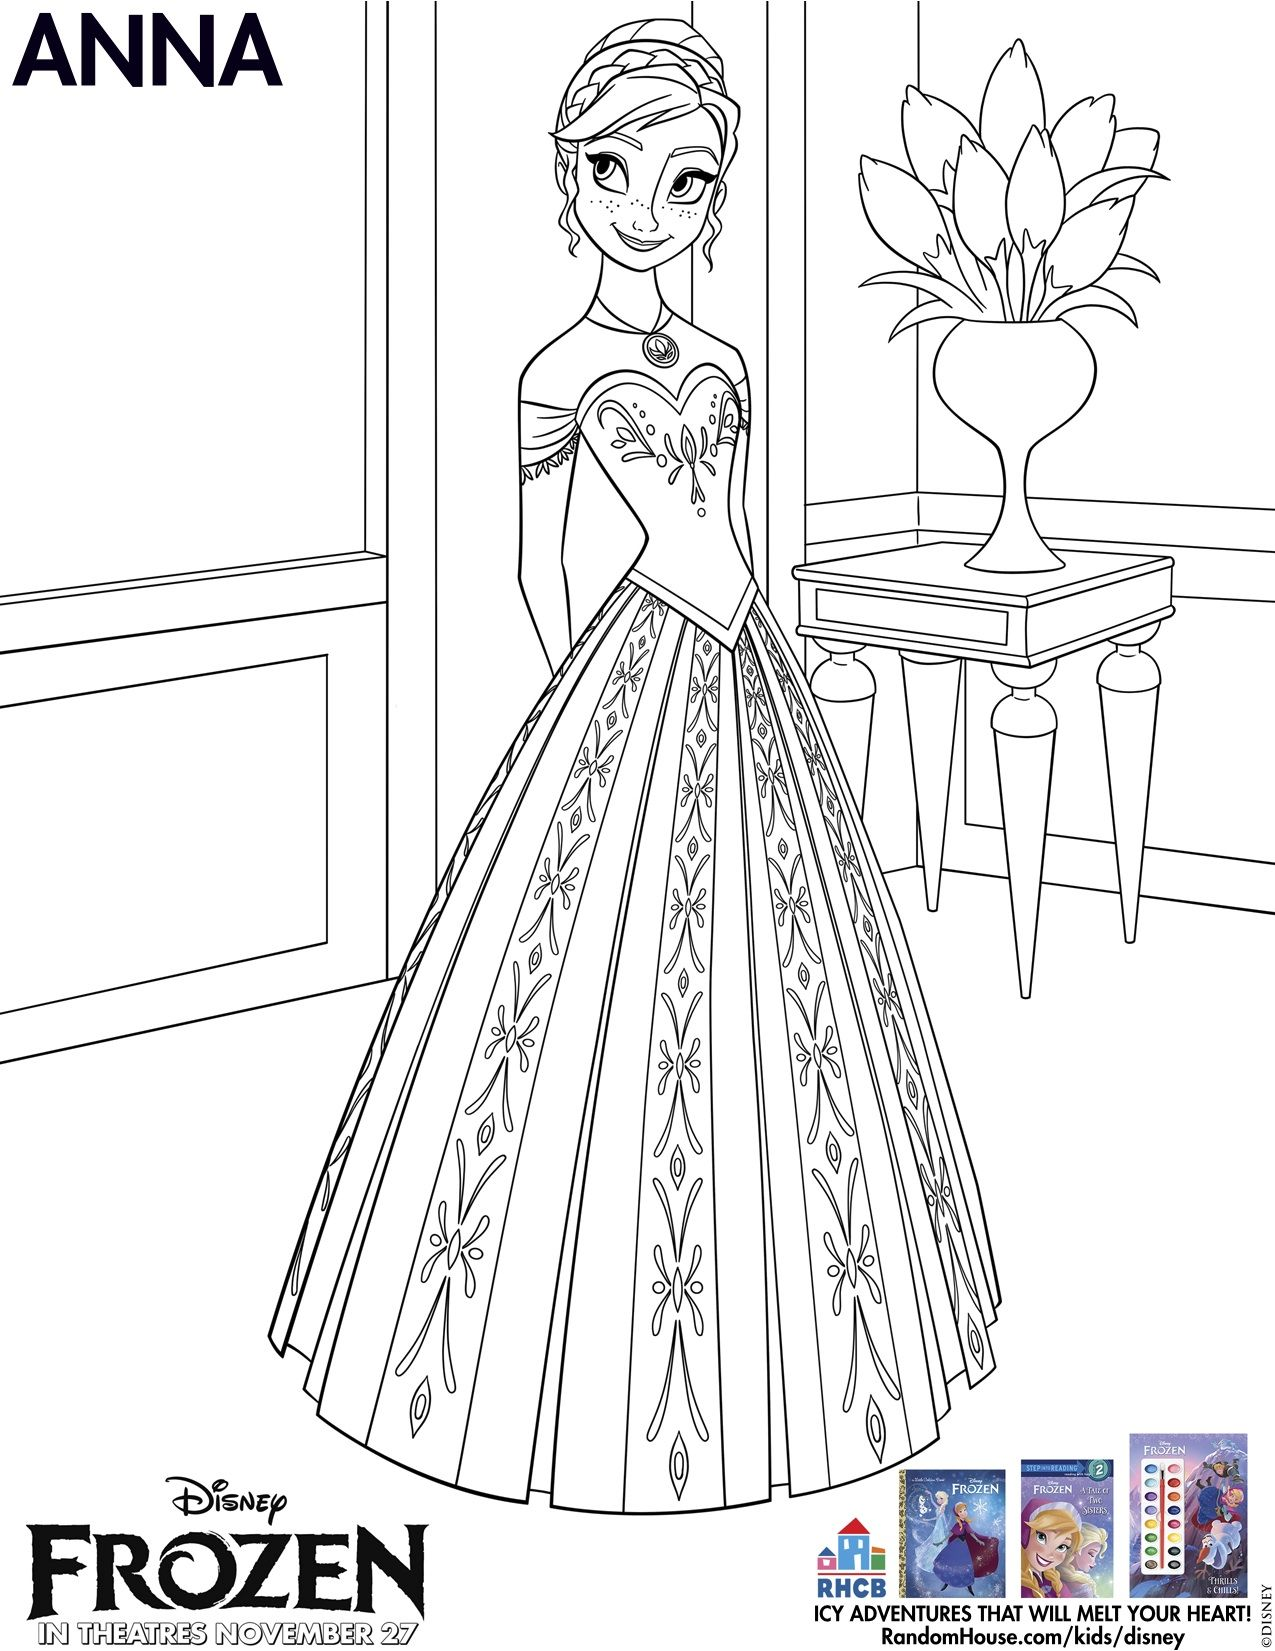 Disney S Frozen Coloring Pages And Printables For Kids Frozen Coloring Pages Elsa Coloring Pages Frozen Coloring Sheets